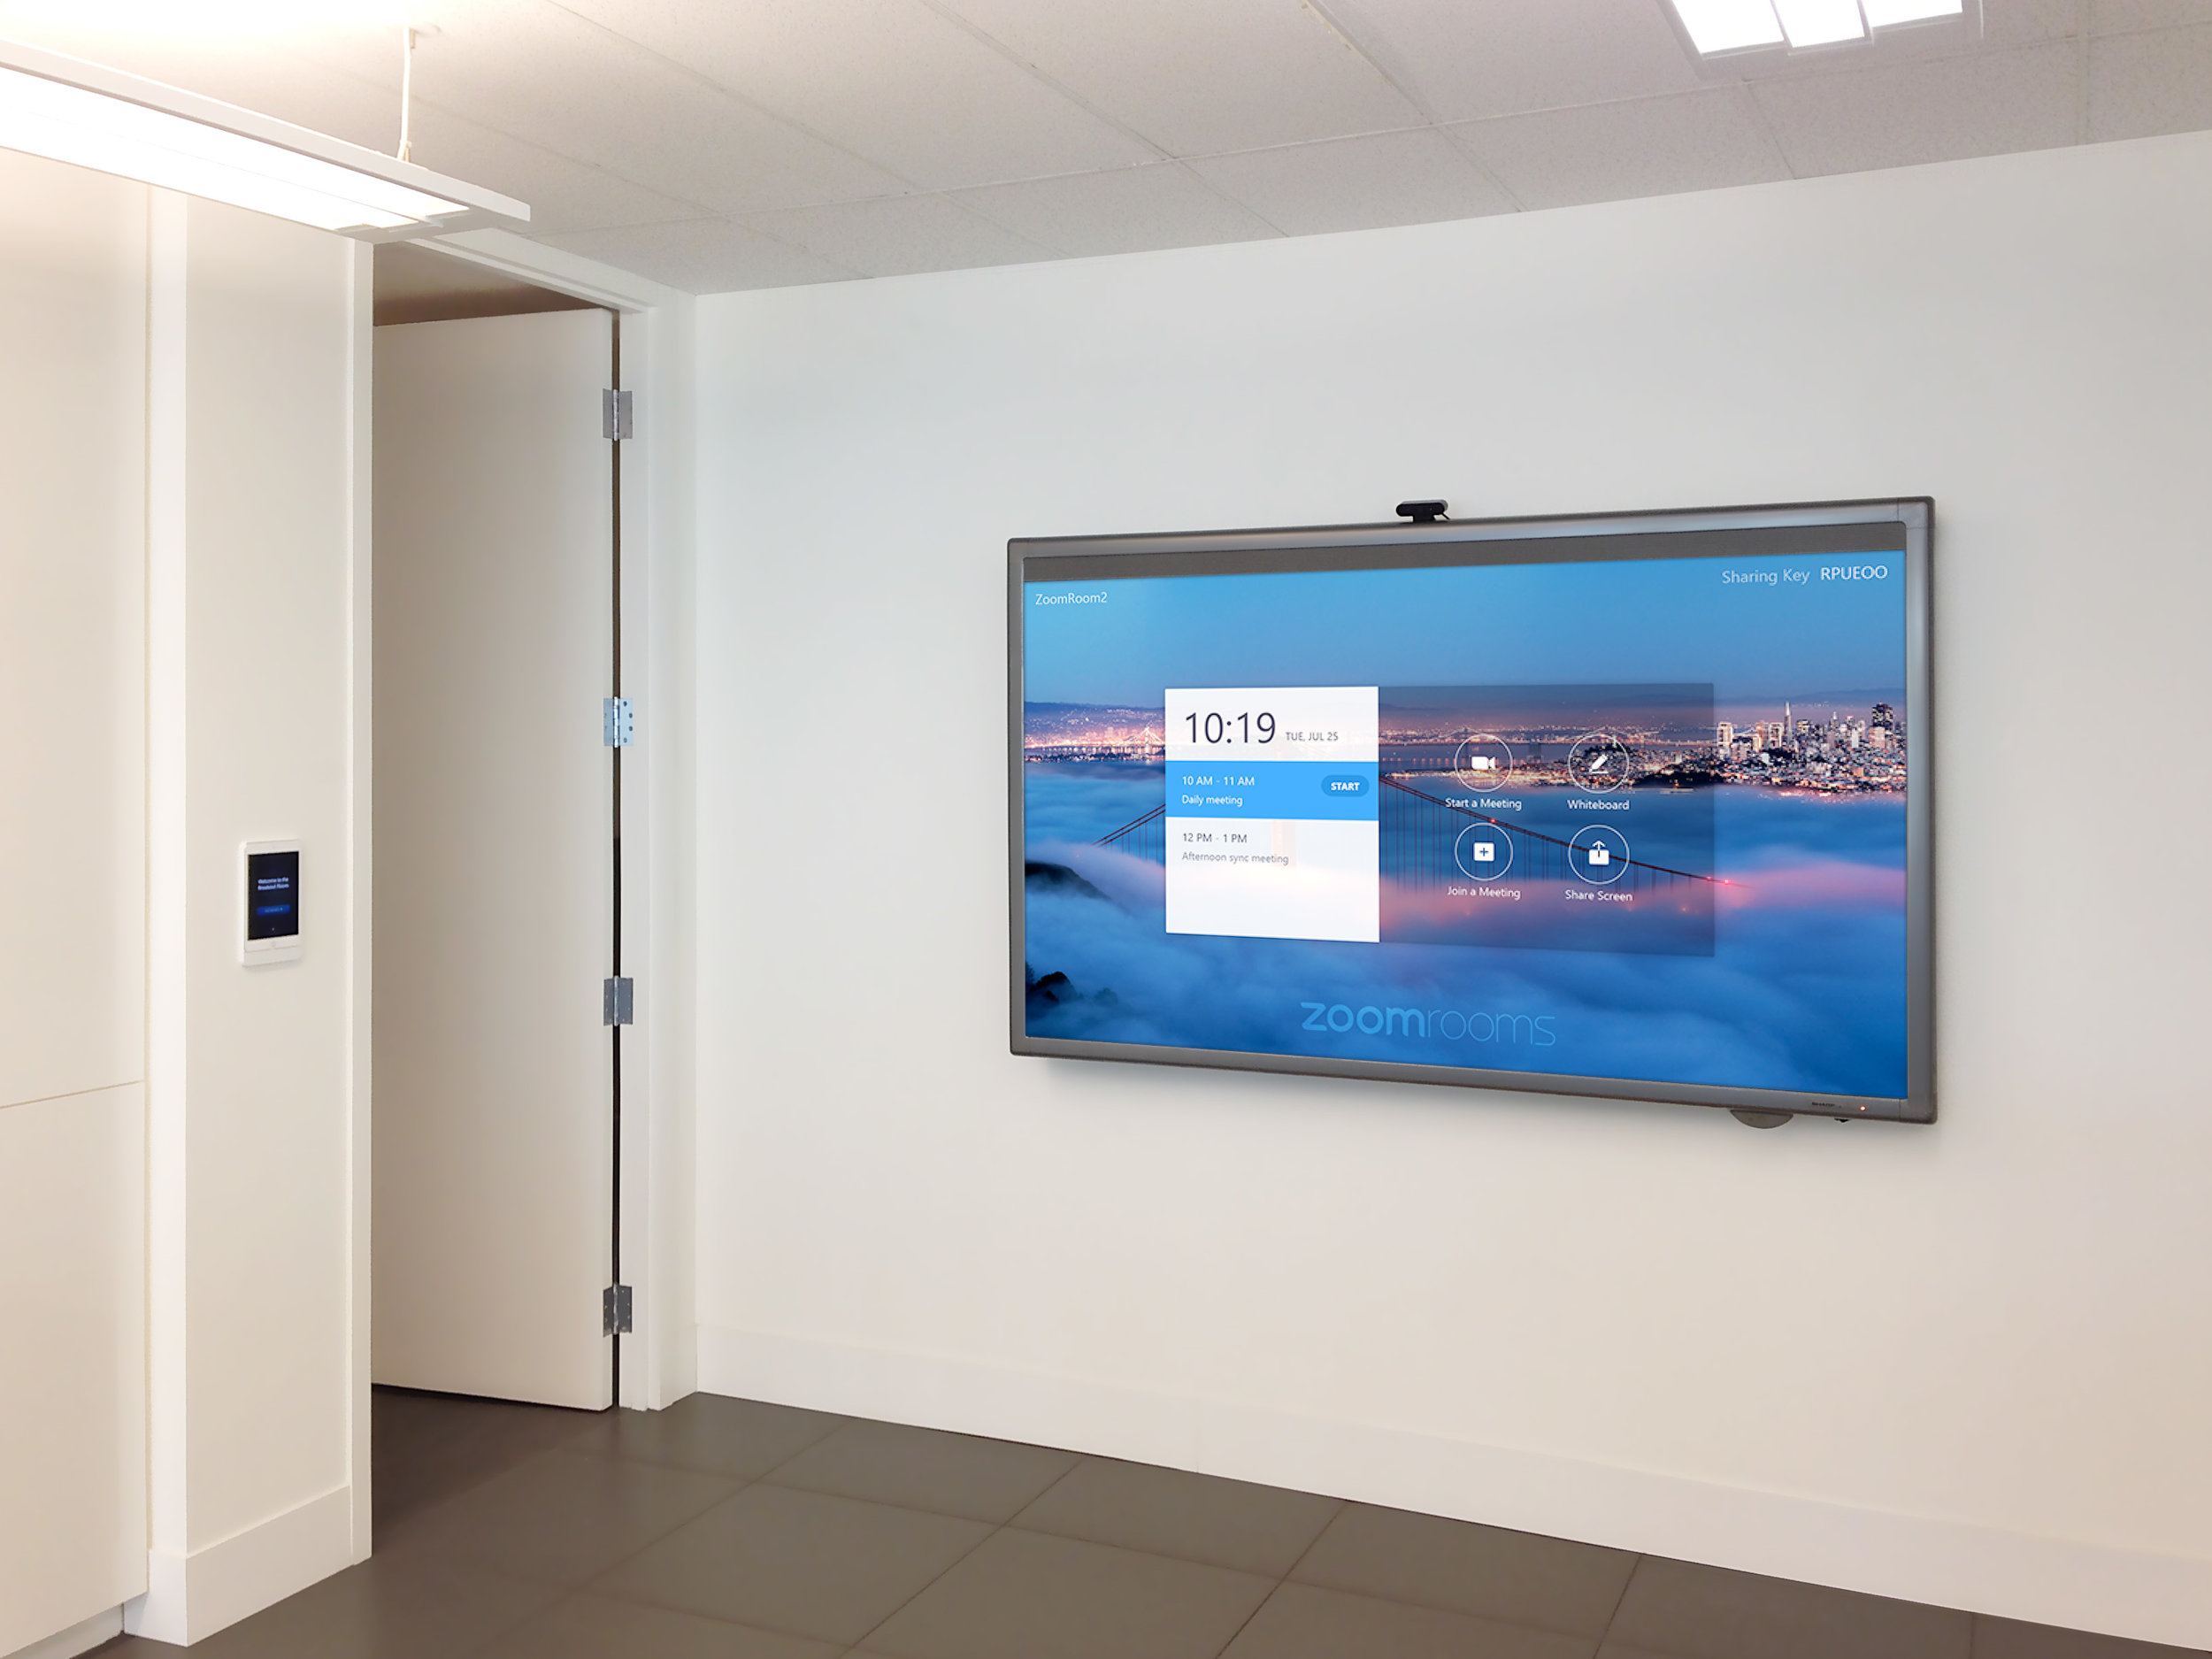 Typified by clean walls and neatly organized spaces, this office is adorned with equally tidy AV facilities.